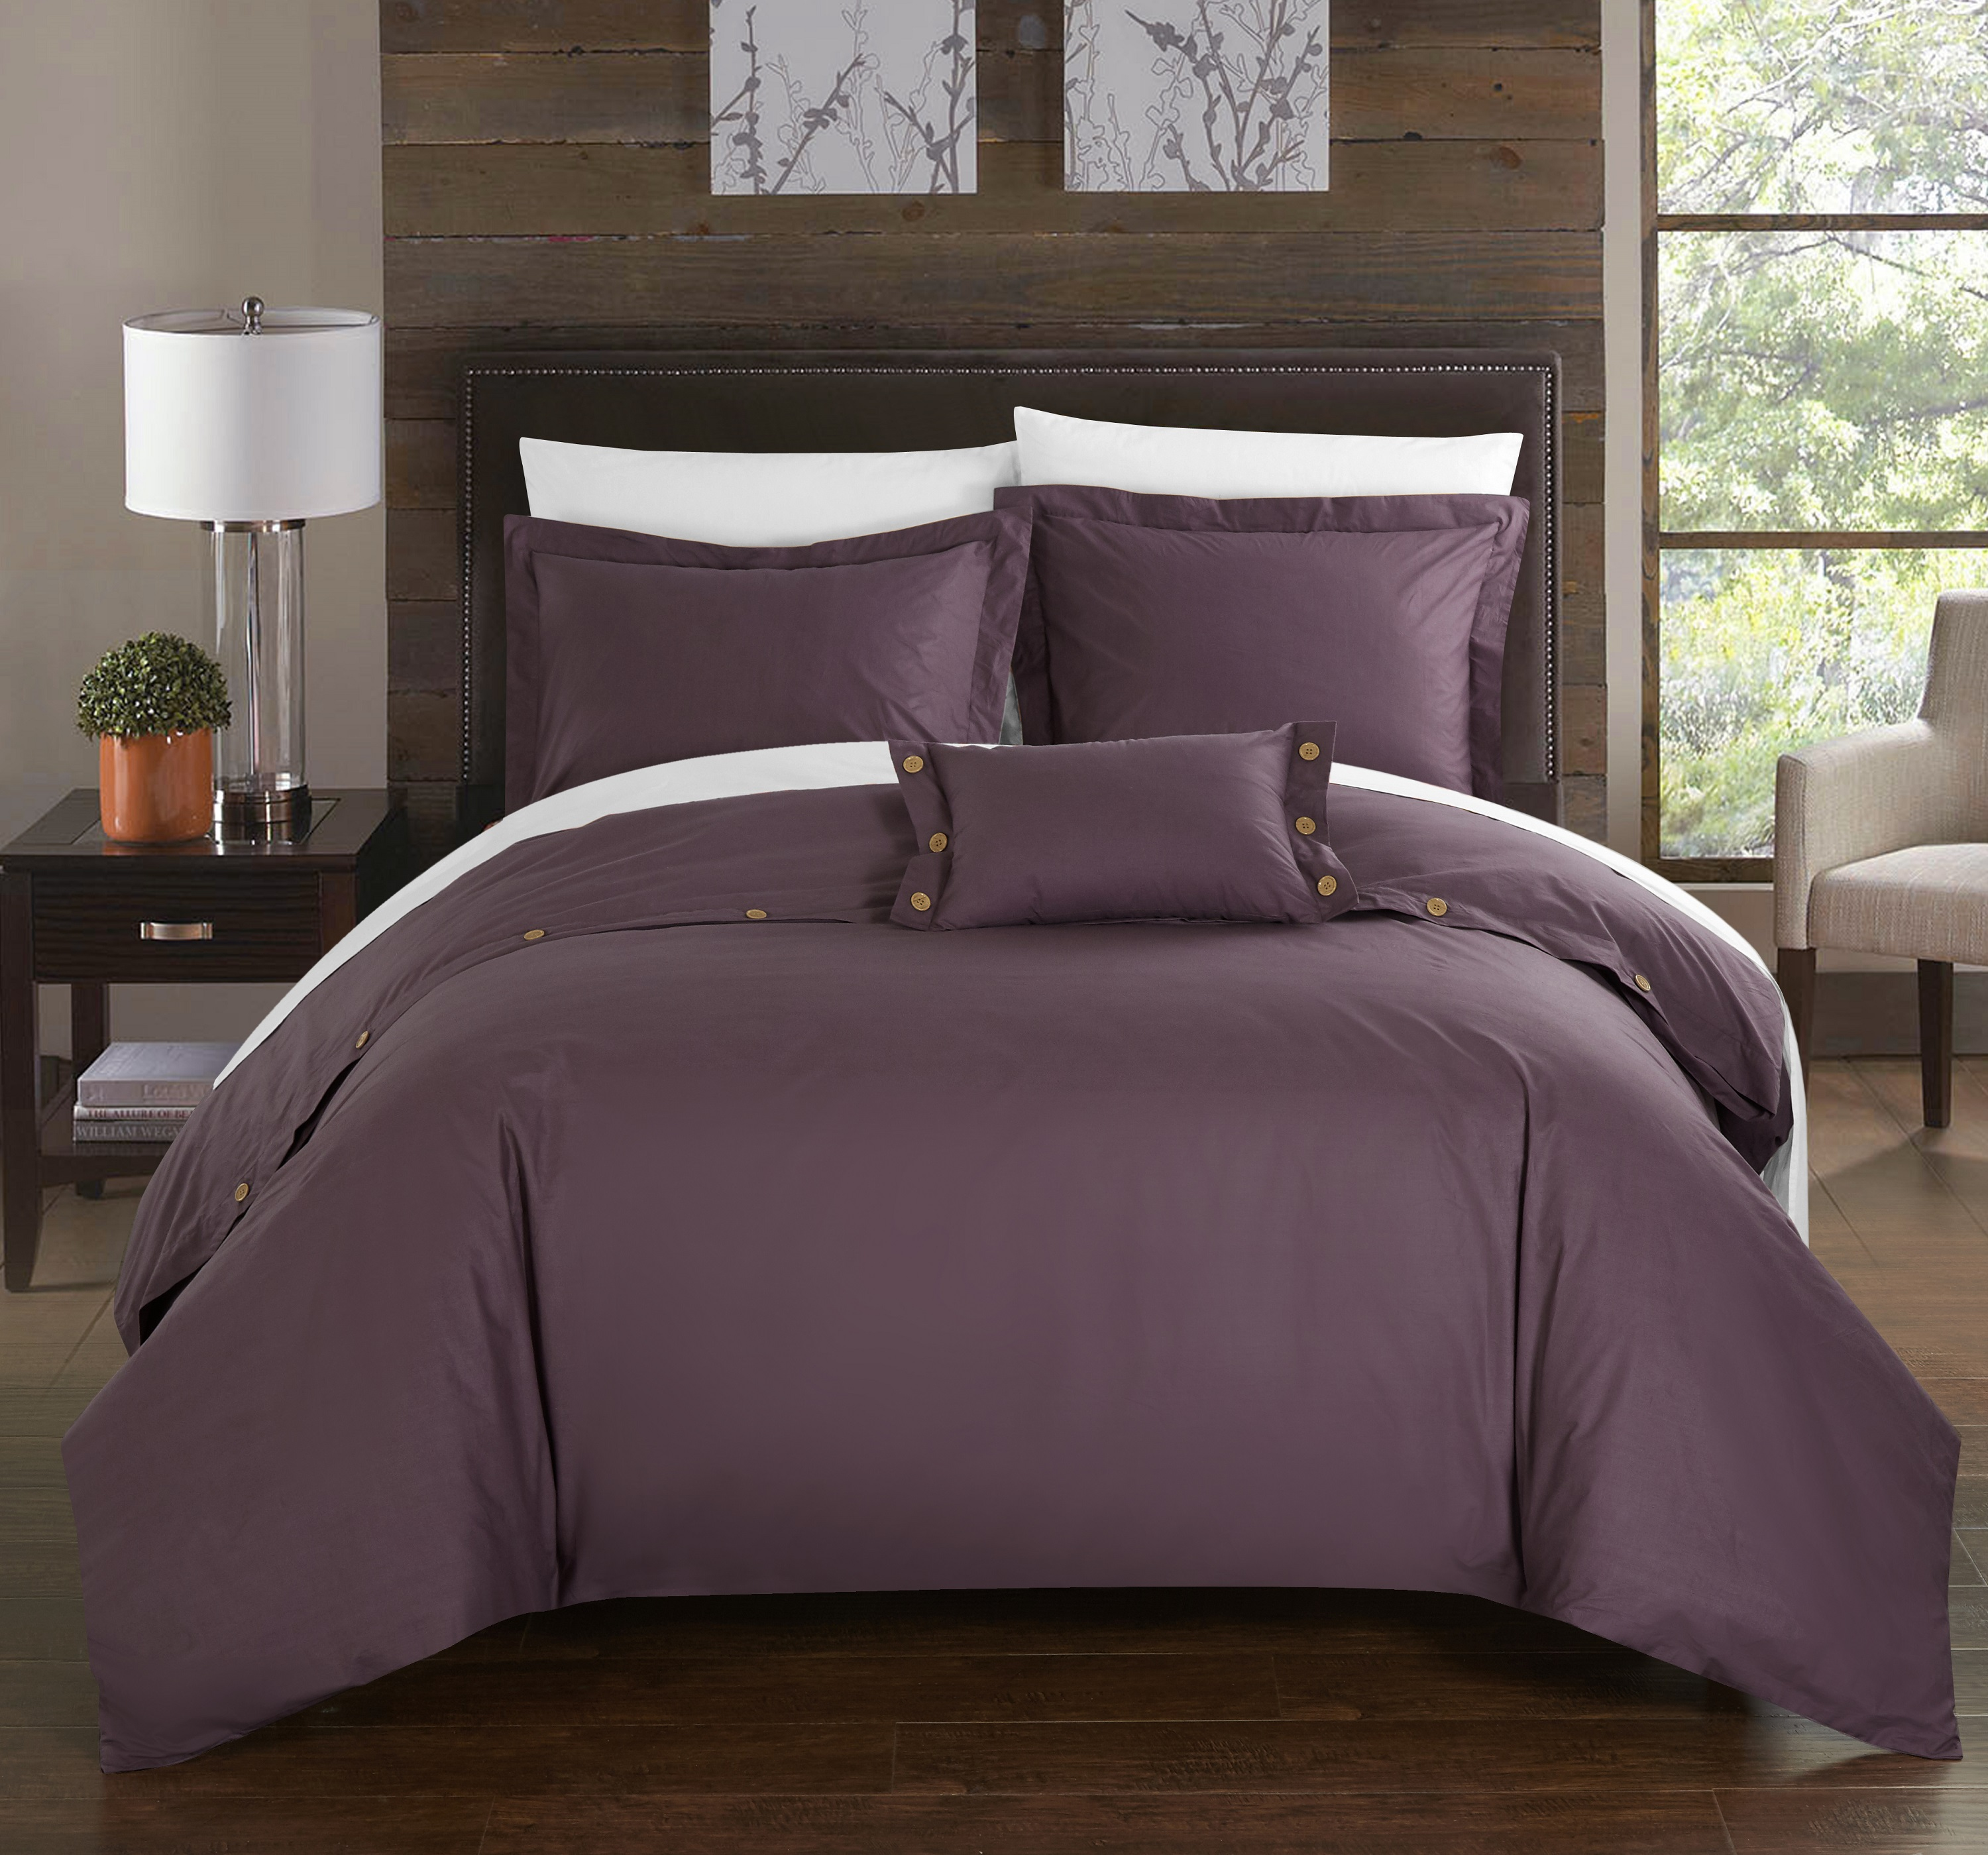 Chic Home 8-Piece Astrid 200 Thread Count COMBED FINISH 100% Cotton Twill Weave Decorative Button Closure Detail Queen Bed In a Bag Duvet Set Purple With sheet set